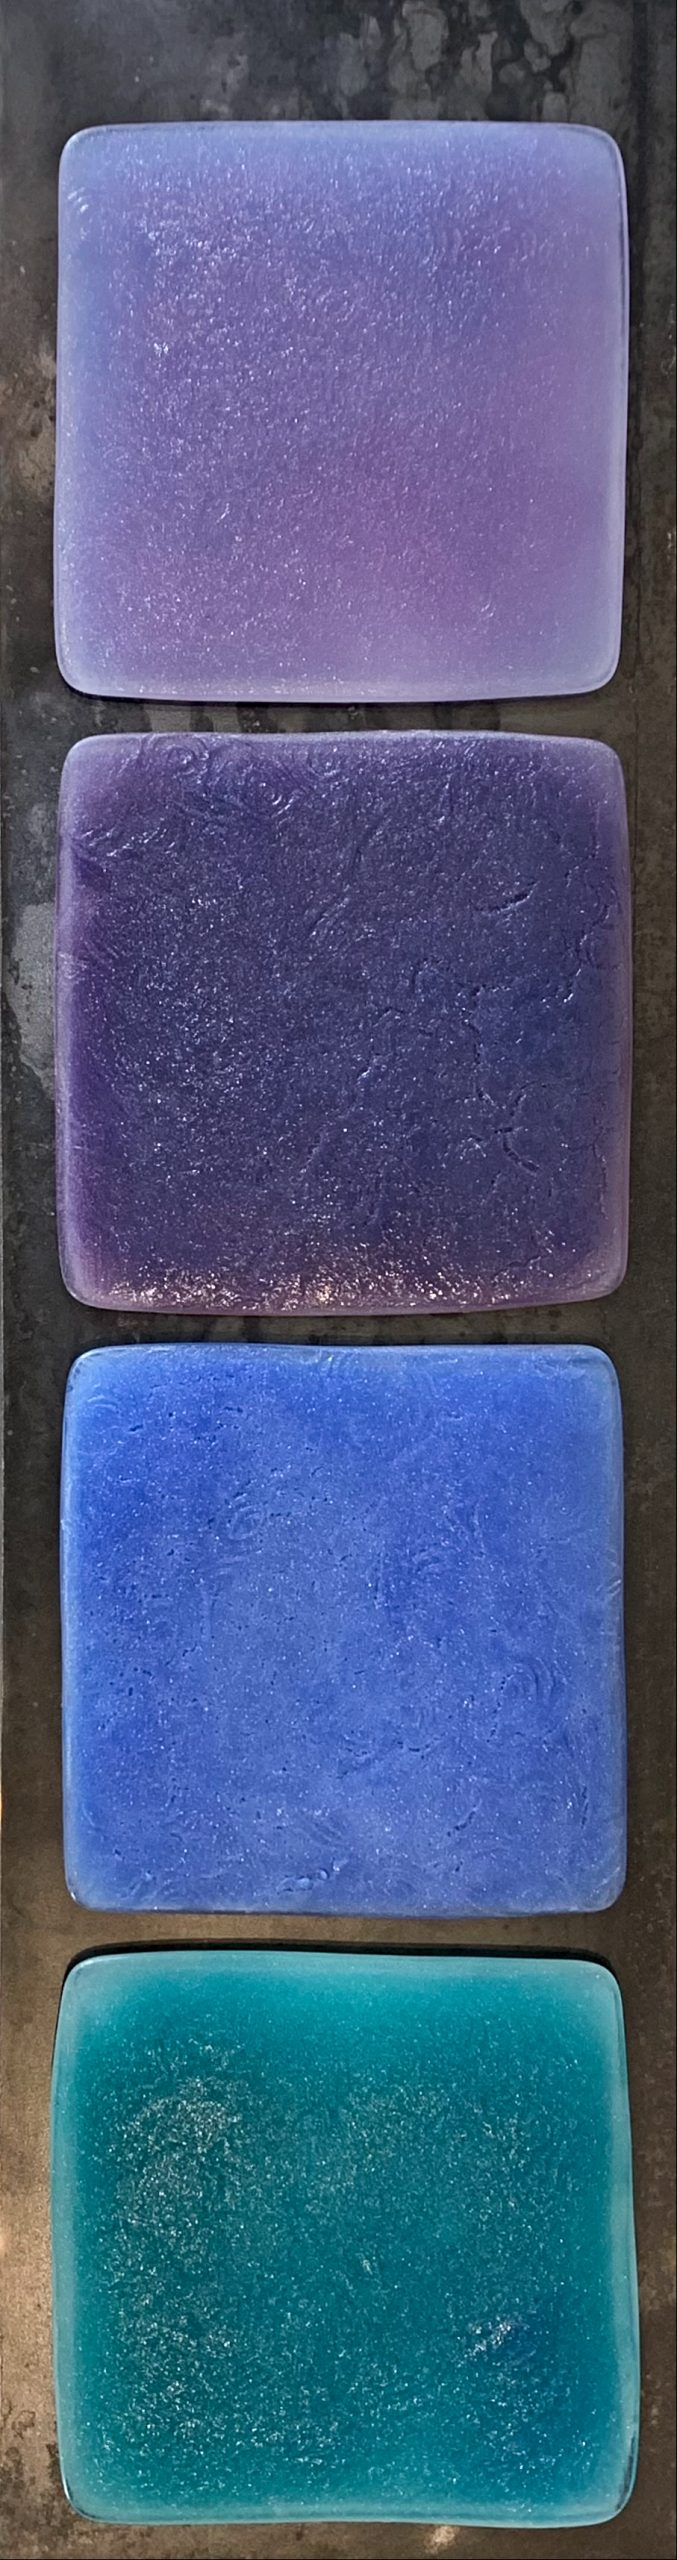 Shift, cast glass and steel panel by Heather Cuell | Effusion Art Gallery + Cast Glass Studio, Invermere BC